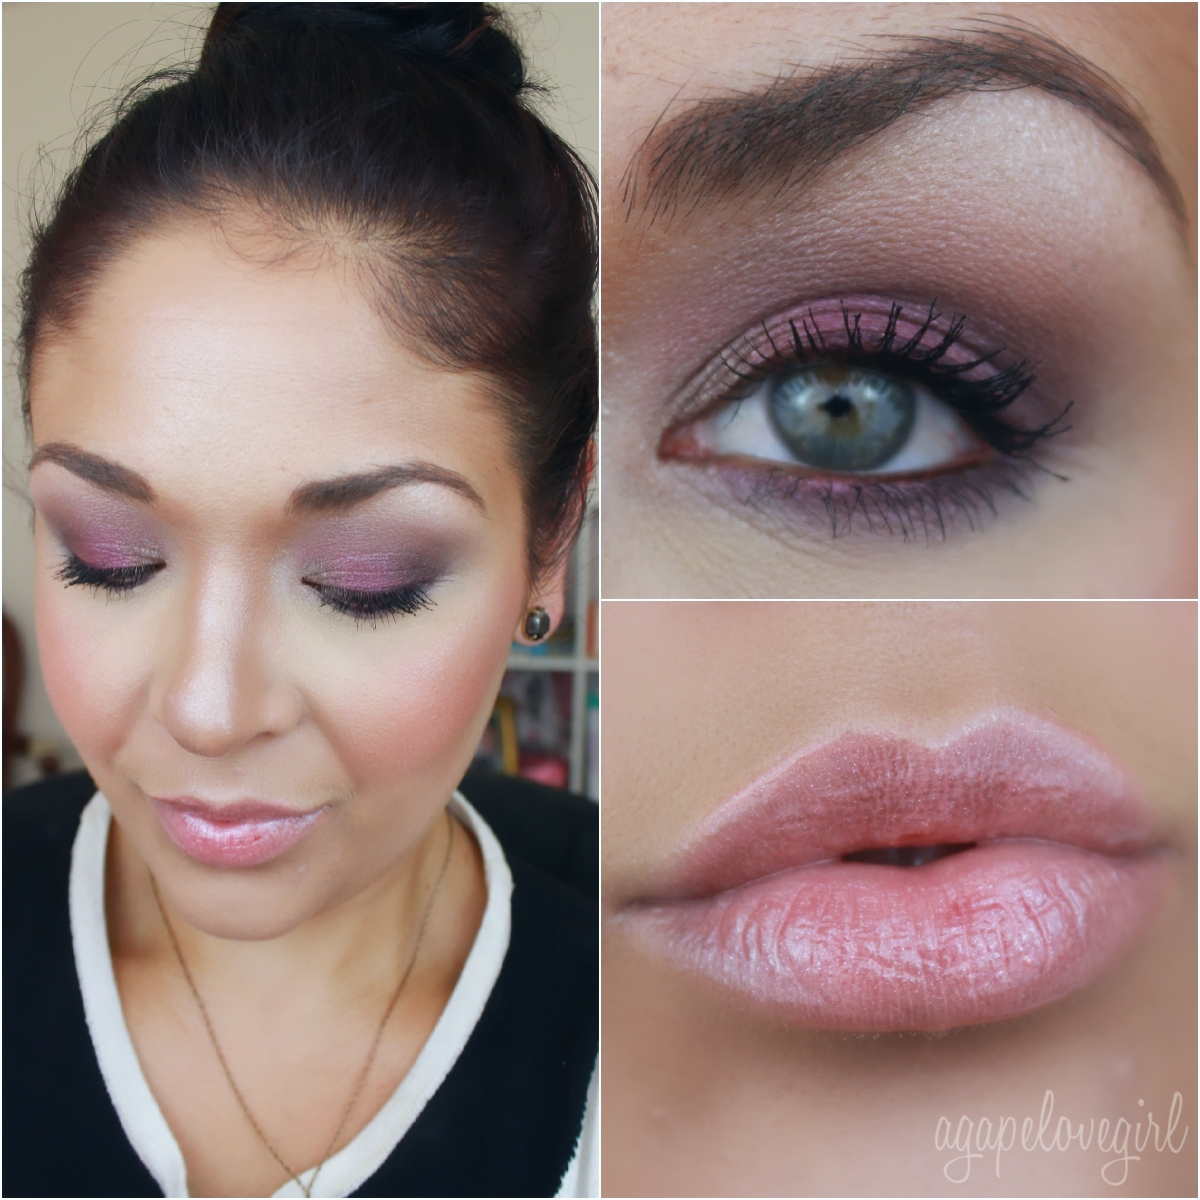 Agape love designs makeup tutorial ft luxe pineapple work it tuesday july 21 2015 baditri Image collections